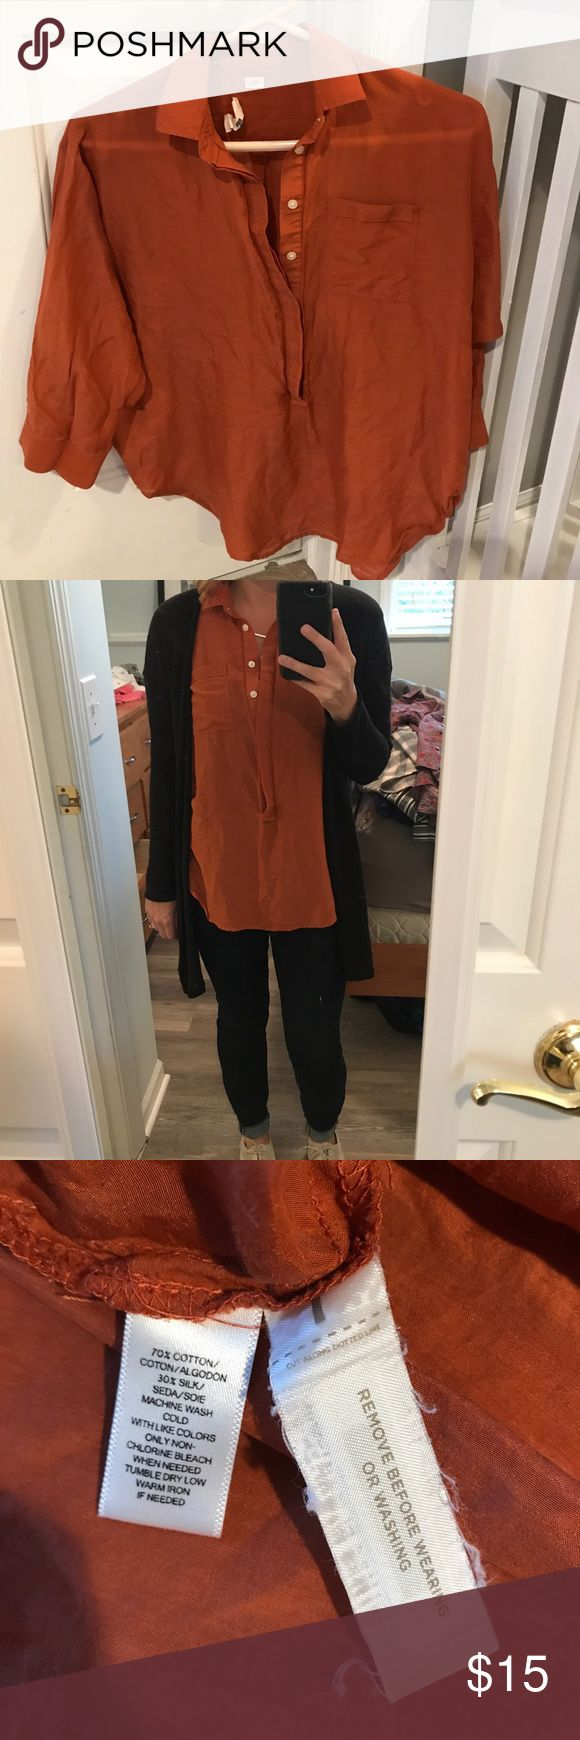 LOFT burnt orange top The softened shirt. Burnt orange half button down with chest pocket. More of a slouchy fit. No stains or tears. LOFT Tops Blouses